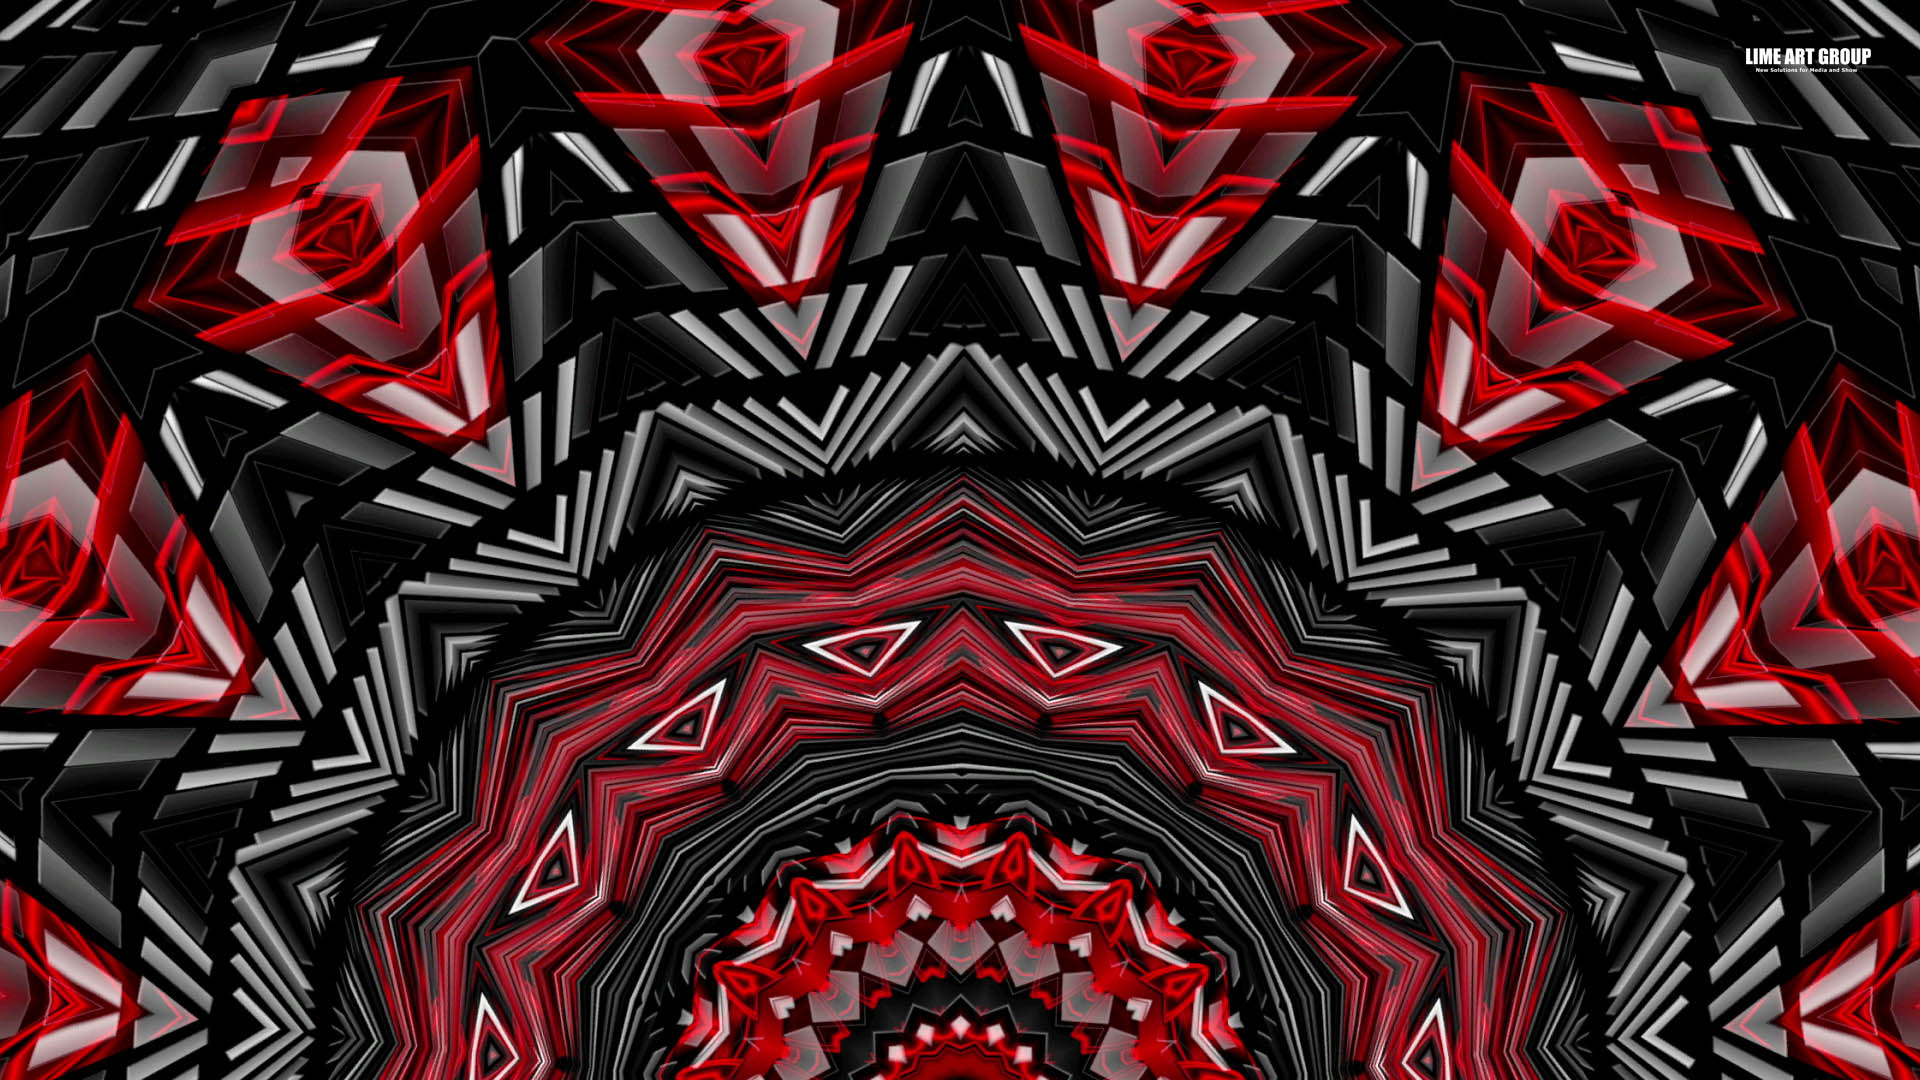 Video Loops, Red color vj loops abstract 7